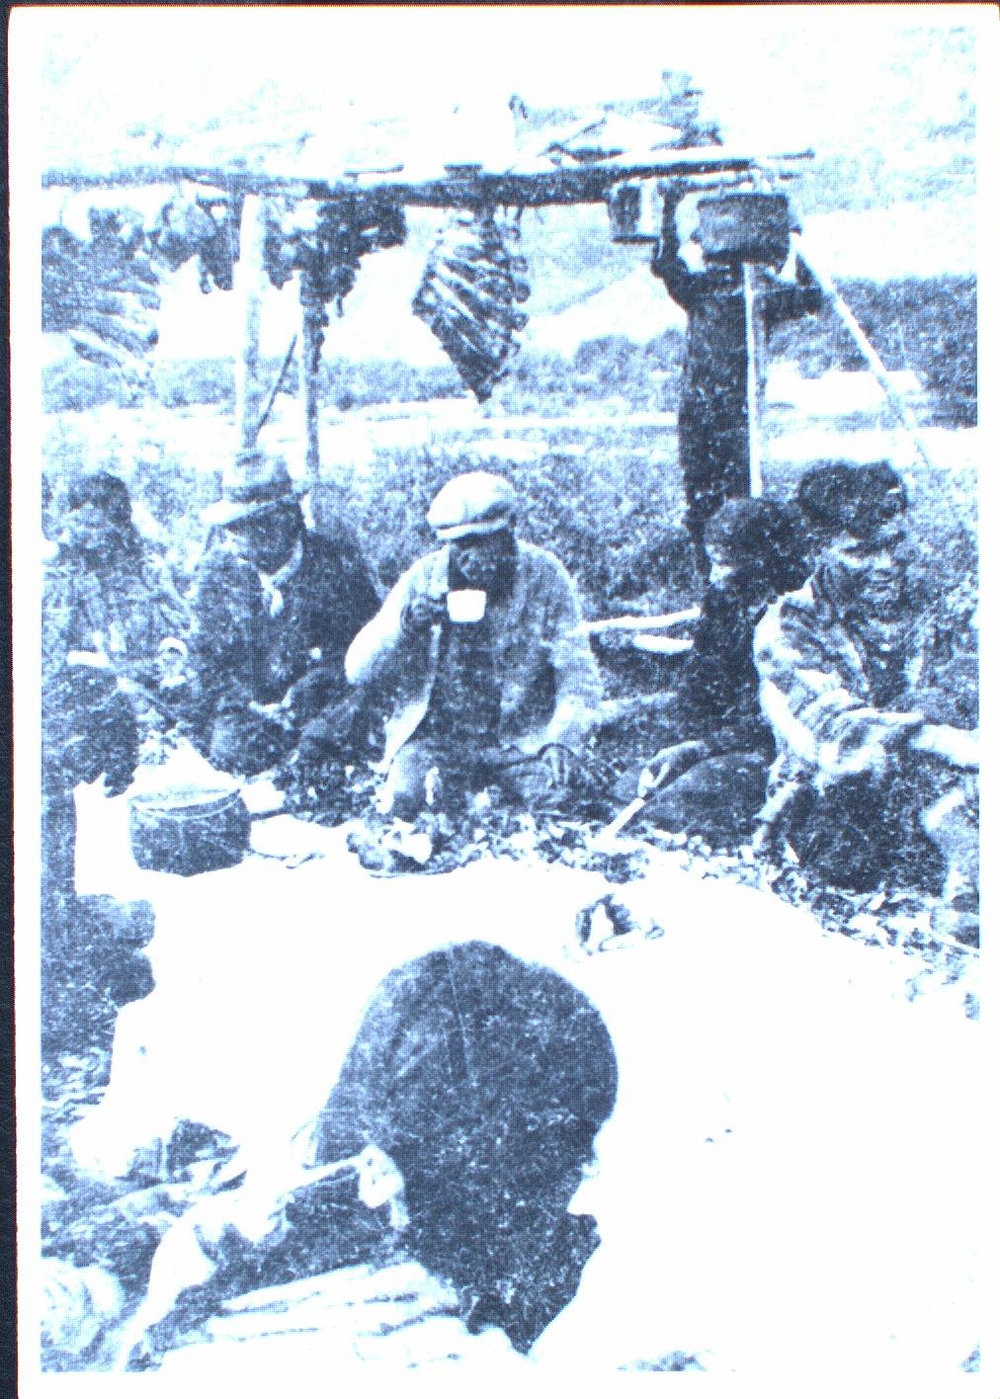 Caribou meat hangs at a potlatch at Coffee Creek, down the river from Fort Selkirk, in 1930. Photo by David Silas. Courtesy of Yukon Archives, Their Own Yukon Project collection 2000/37 #192